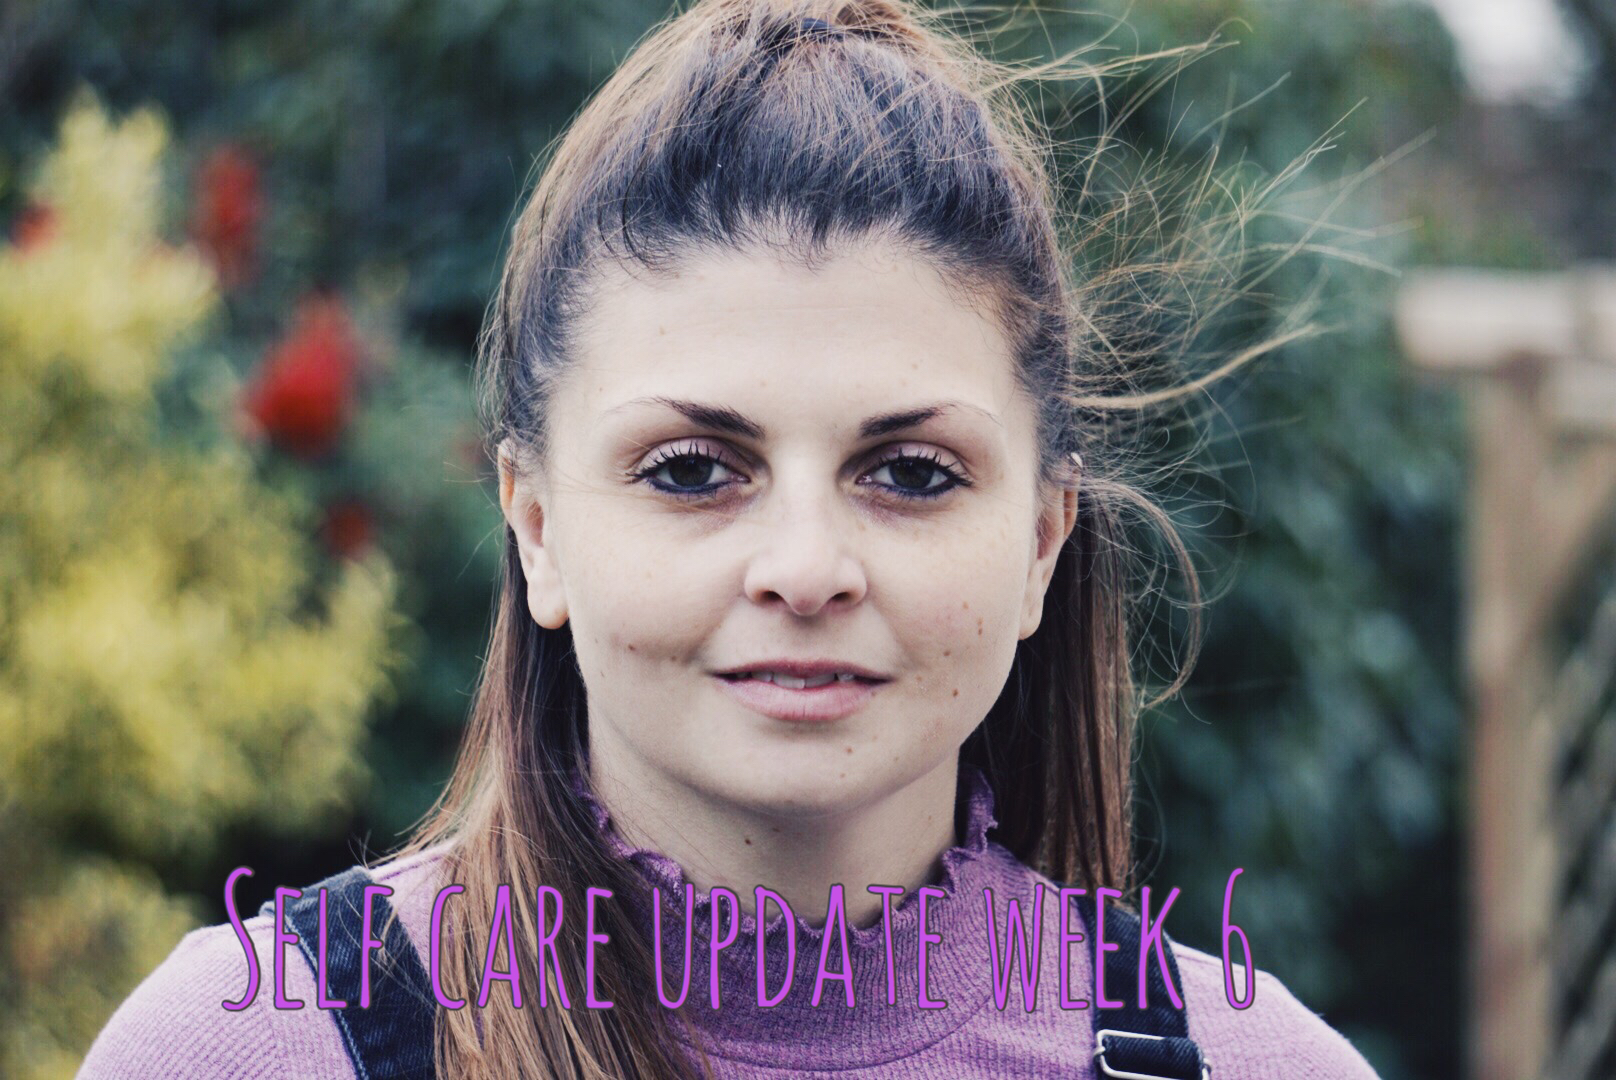 Self Care Update – Week 6 graphic